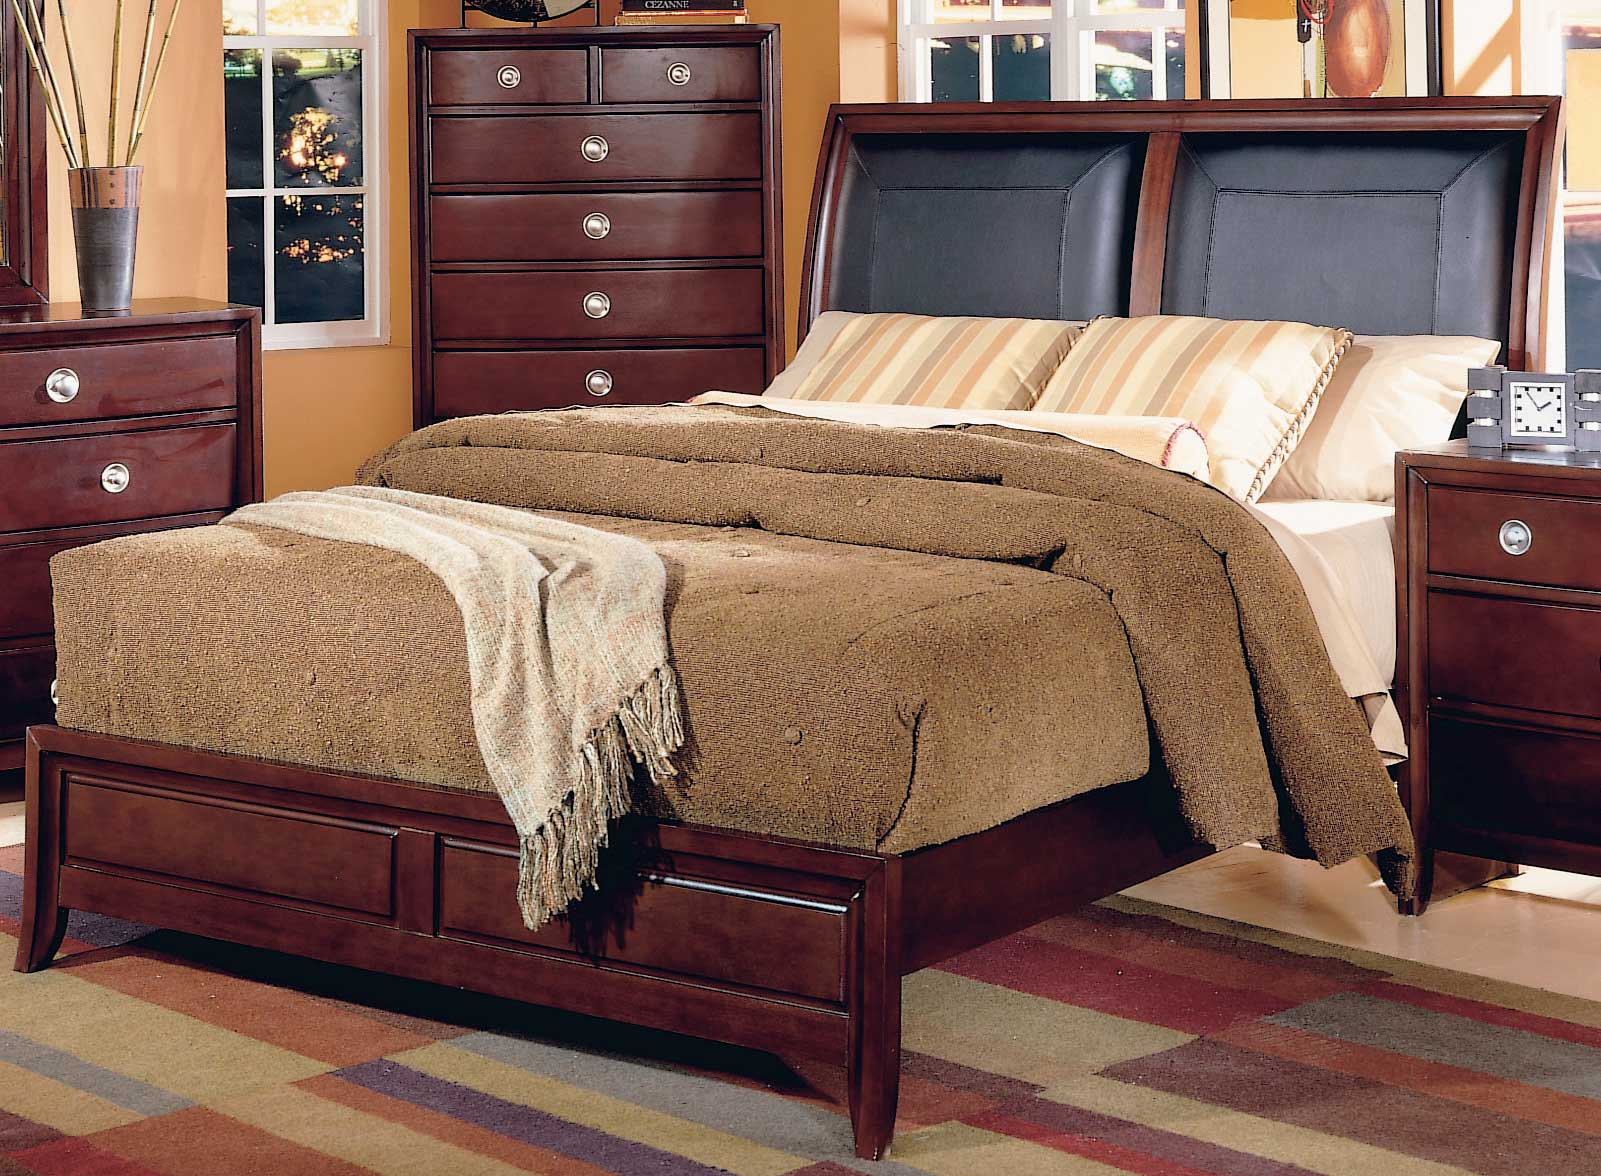 Homelegance Capria Sleigh Bed Leather Headboard 878ll 1 At Homelement Com